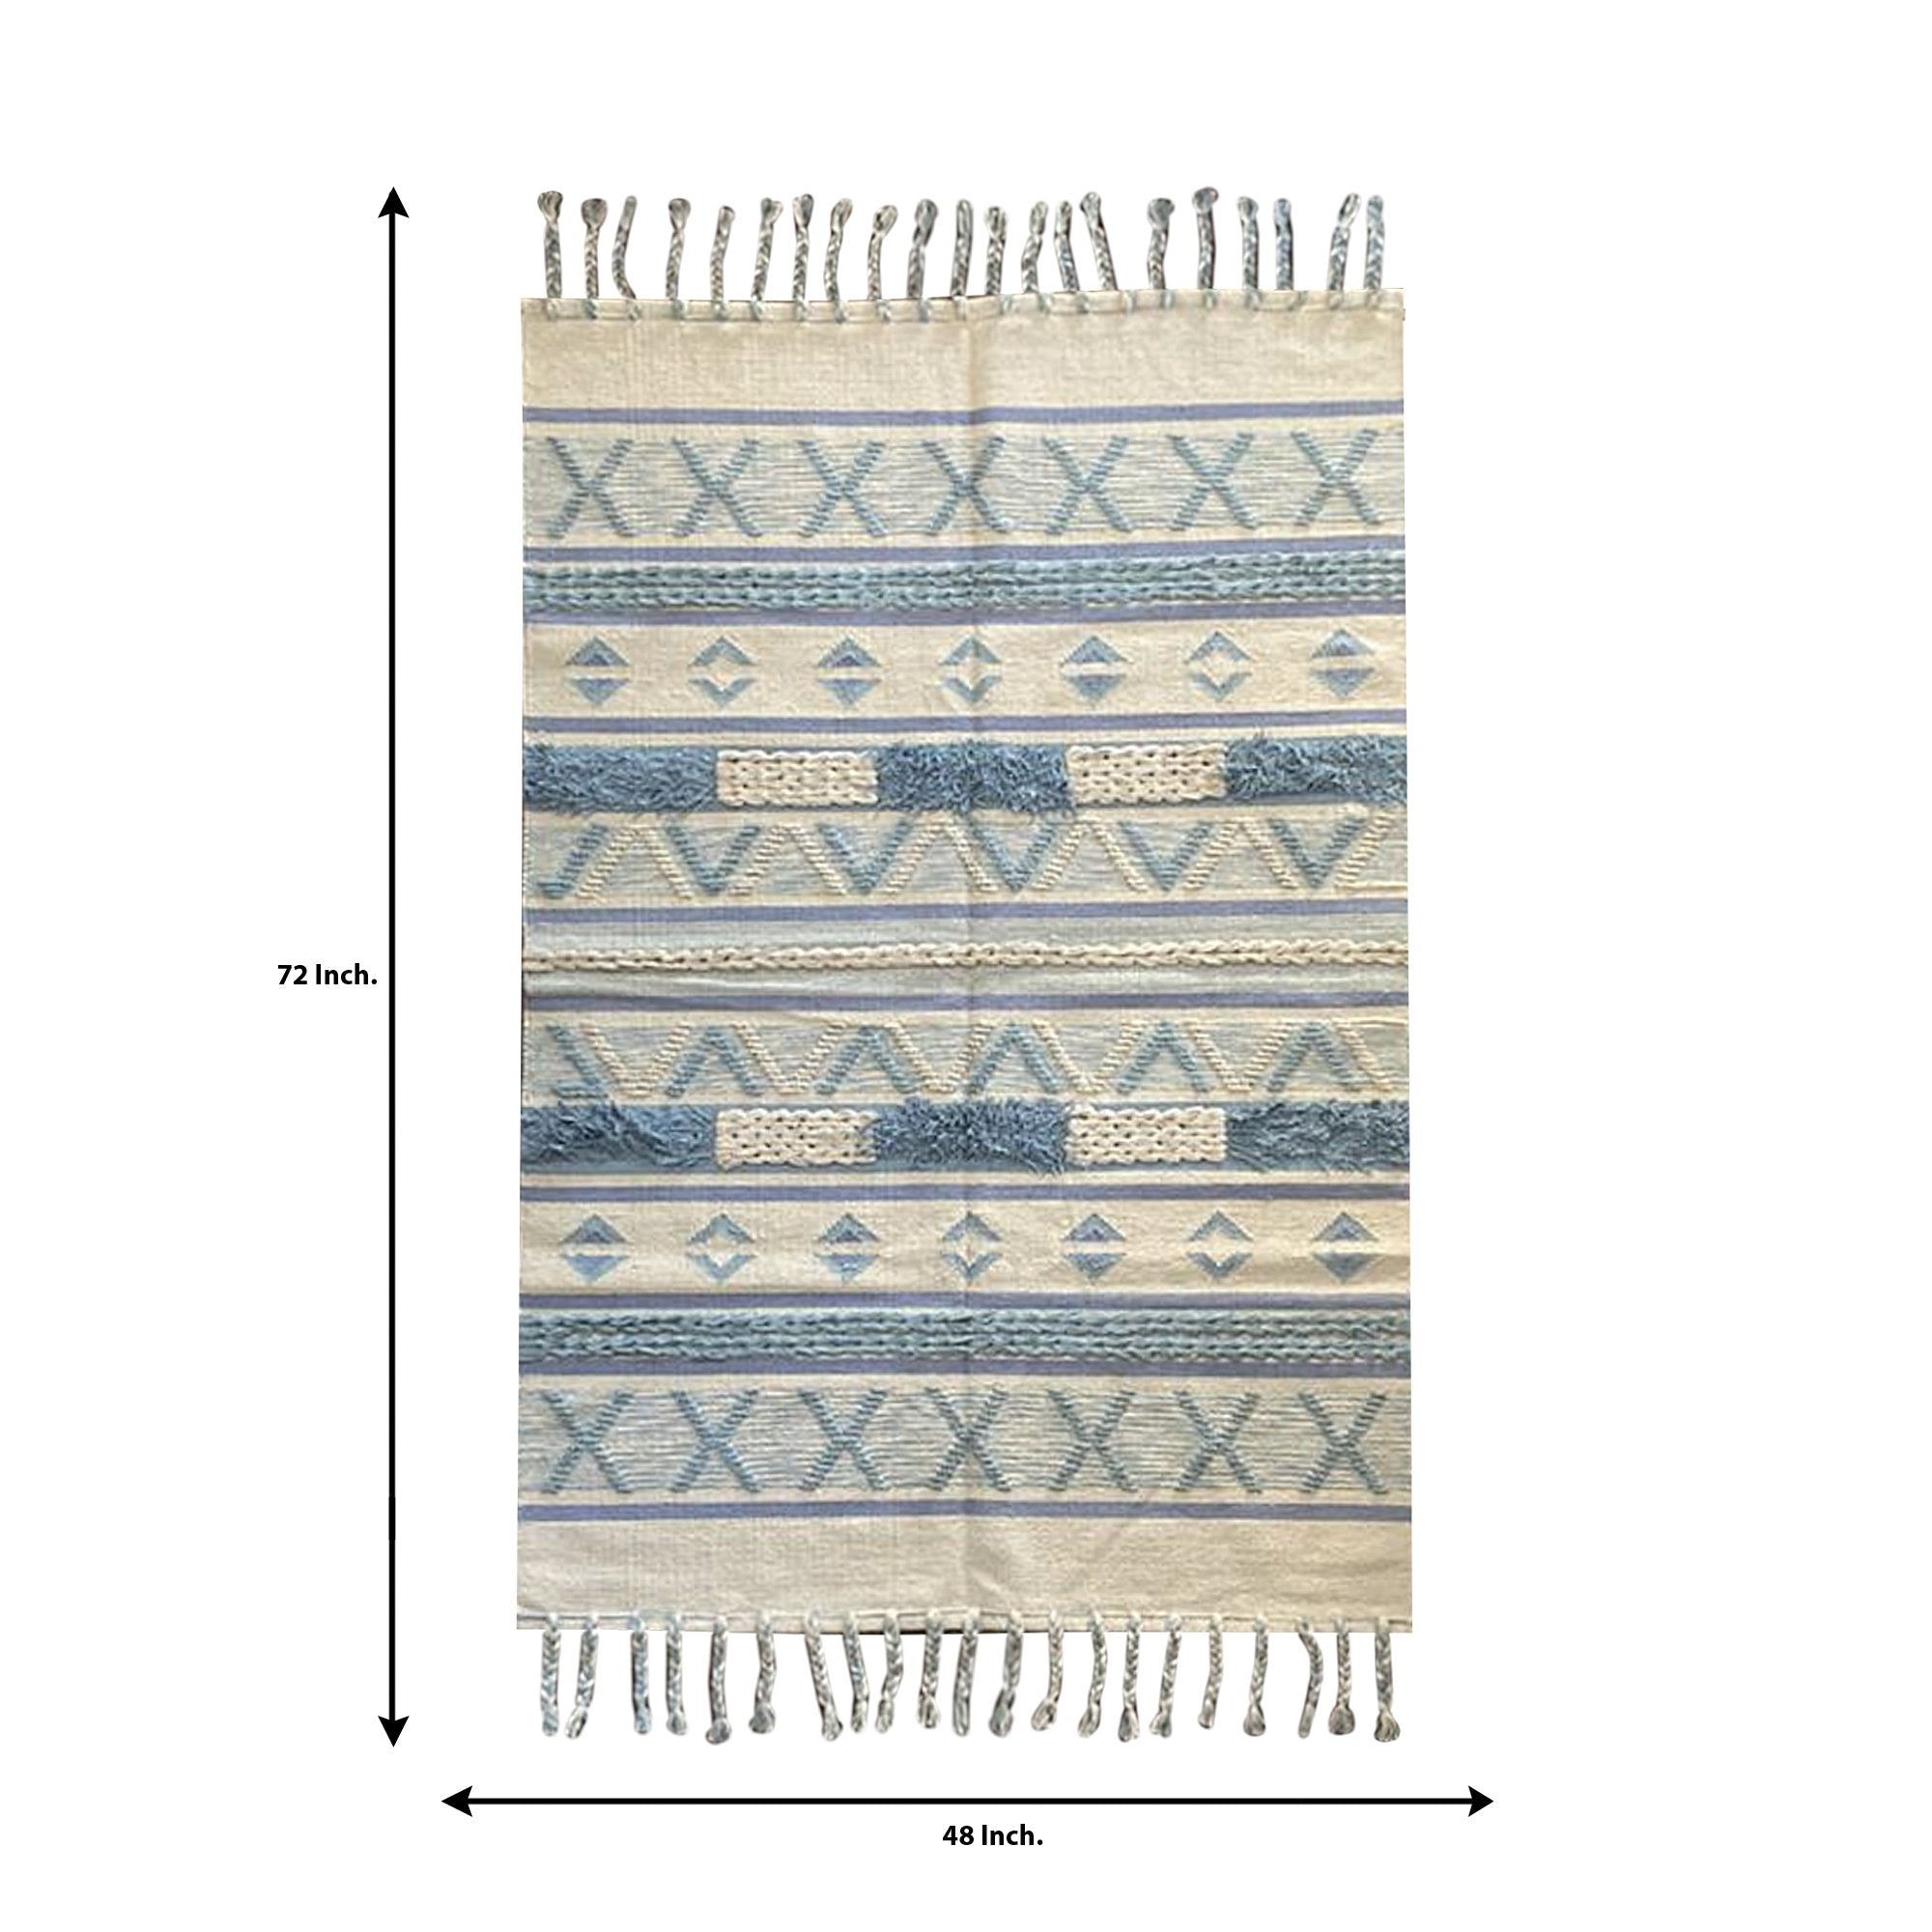 Light Blue and Cream Abstract Pattern Carpet - Teak Tale